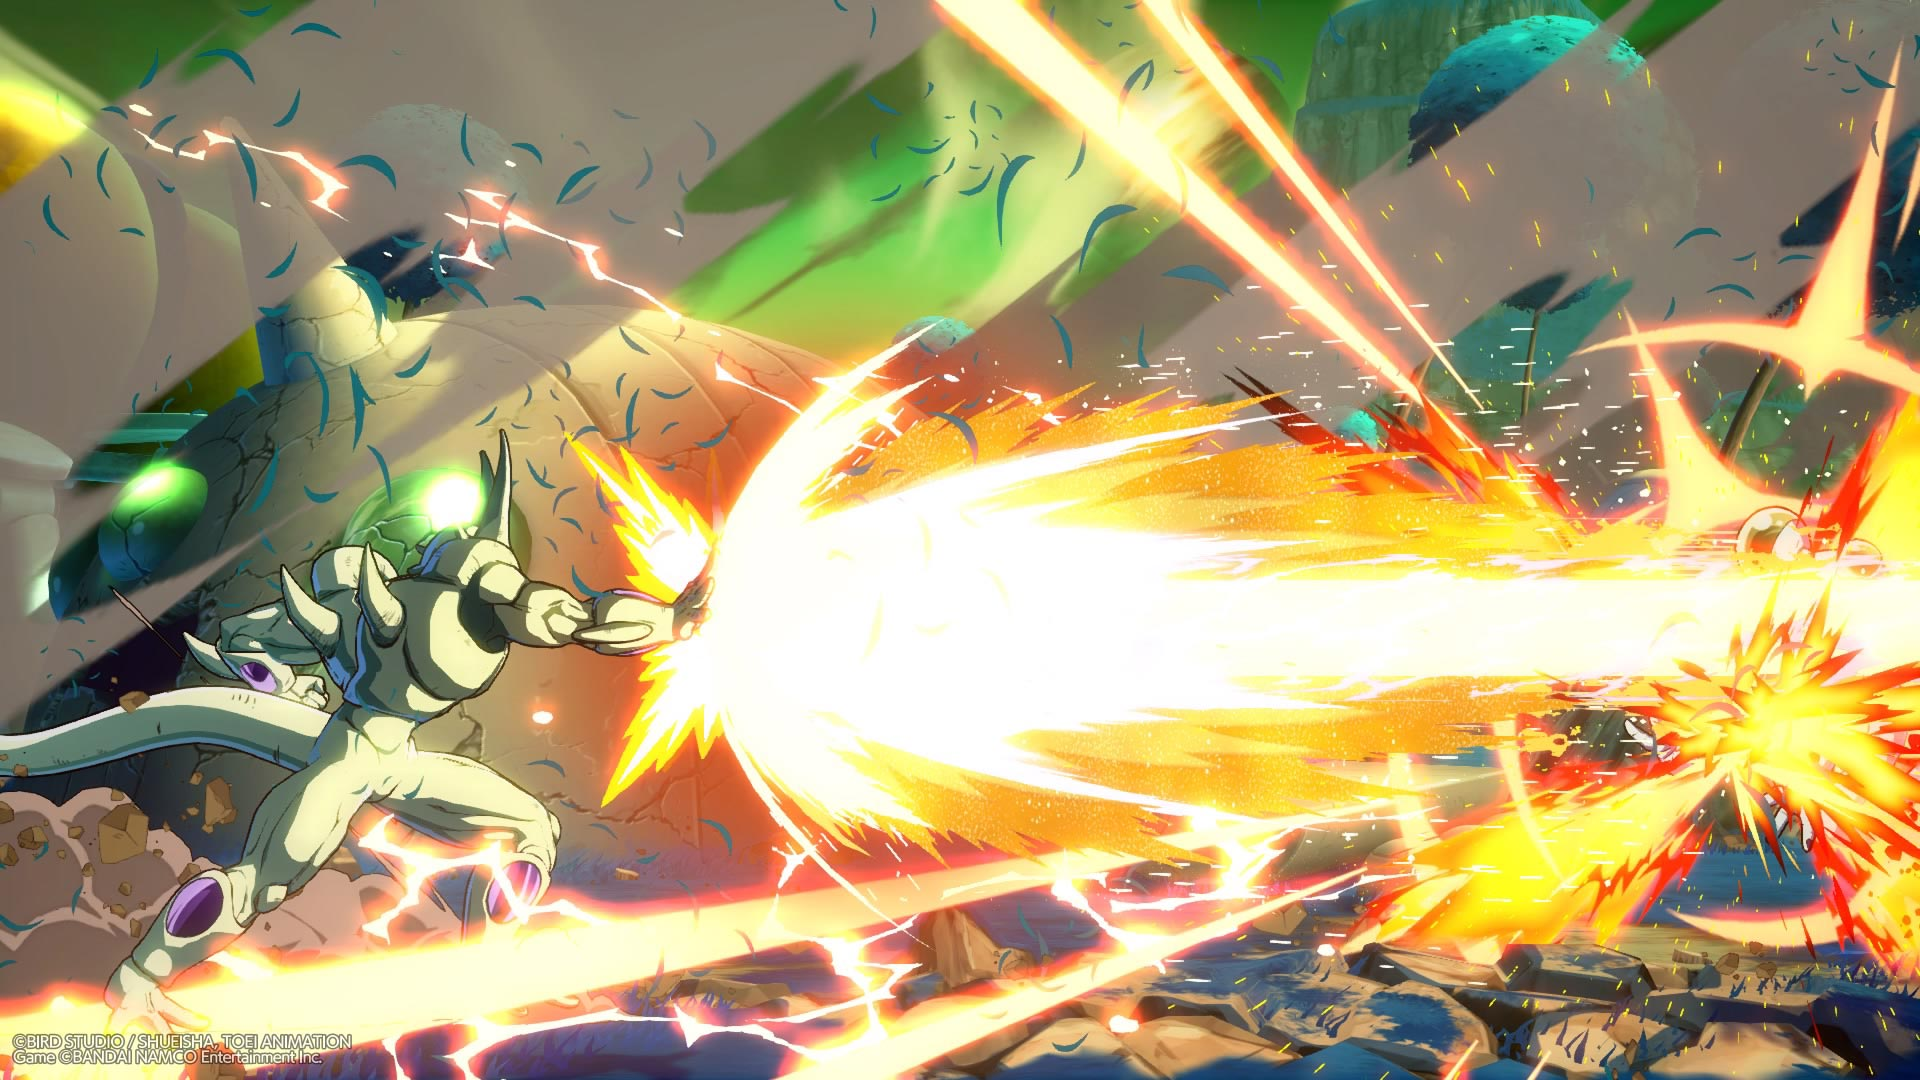 Android 17 and Cooler now available in Dragon Ball FighterZ 13 out of 15 image gallery